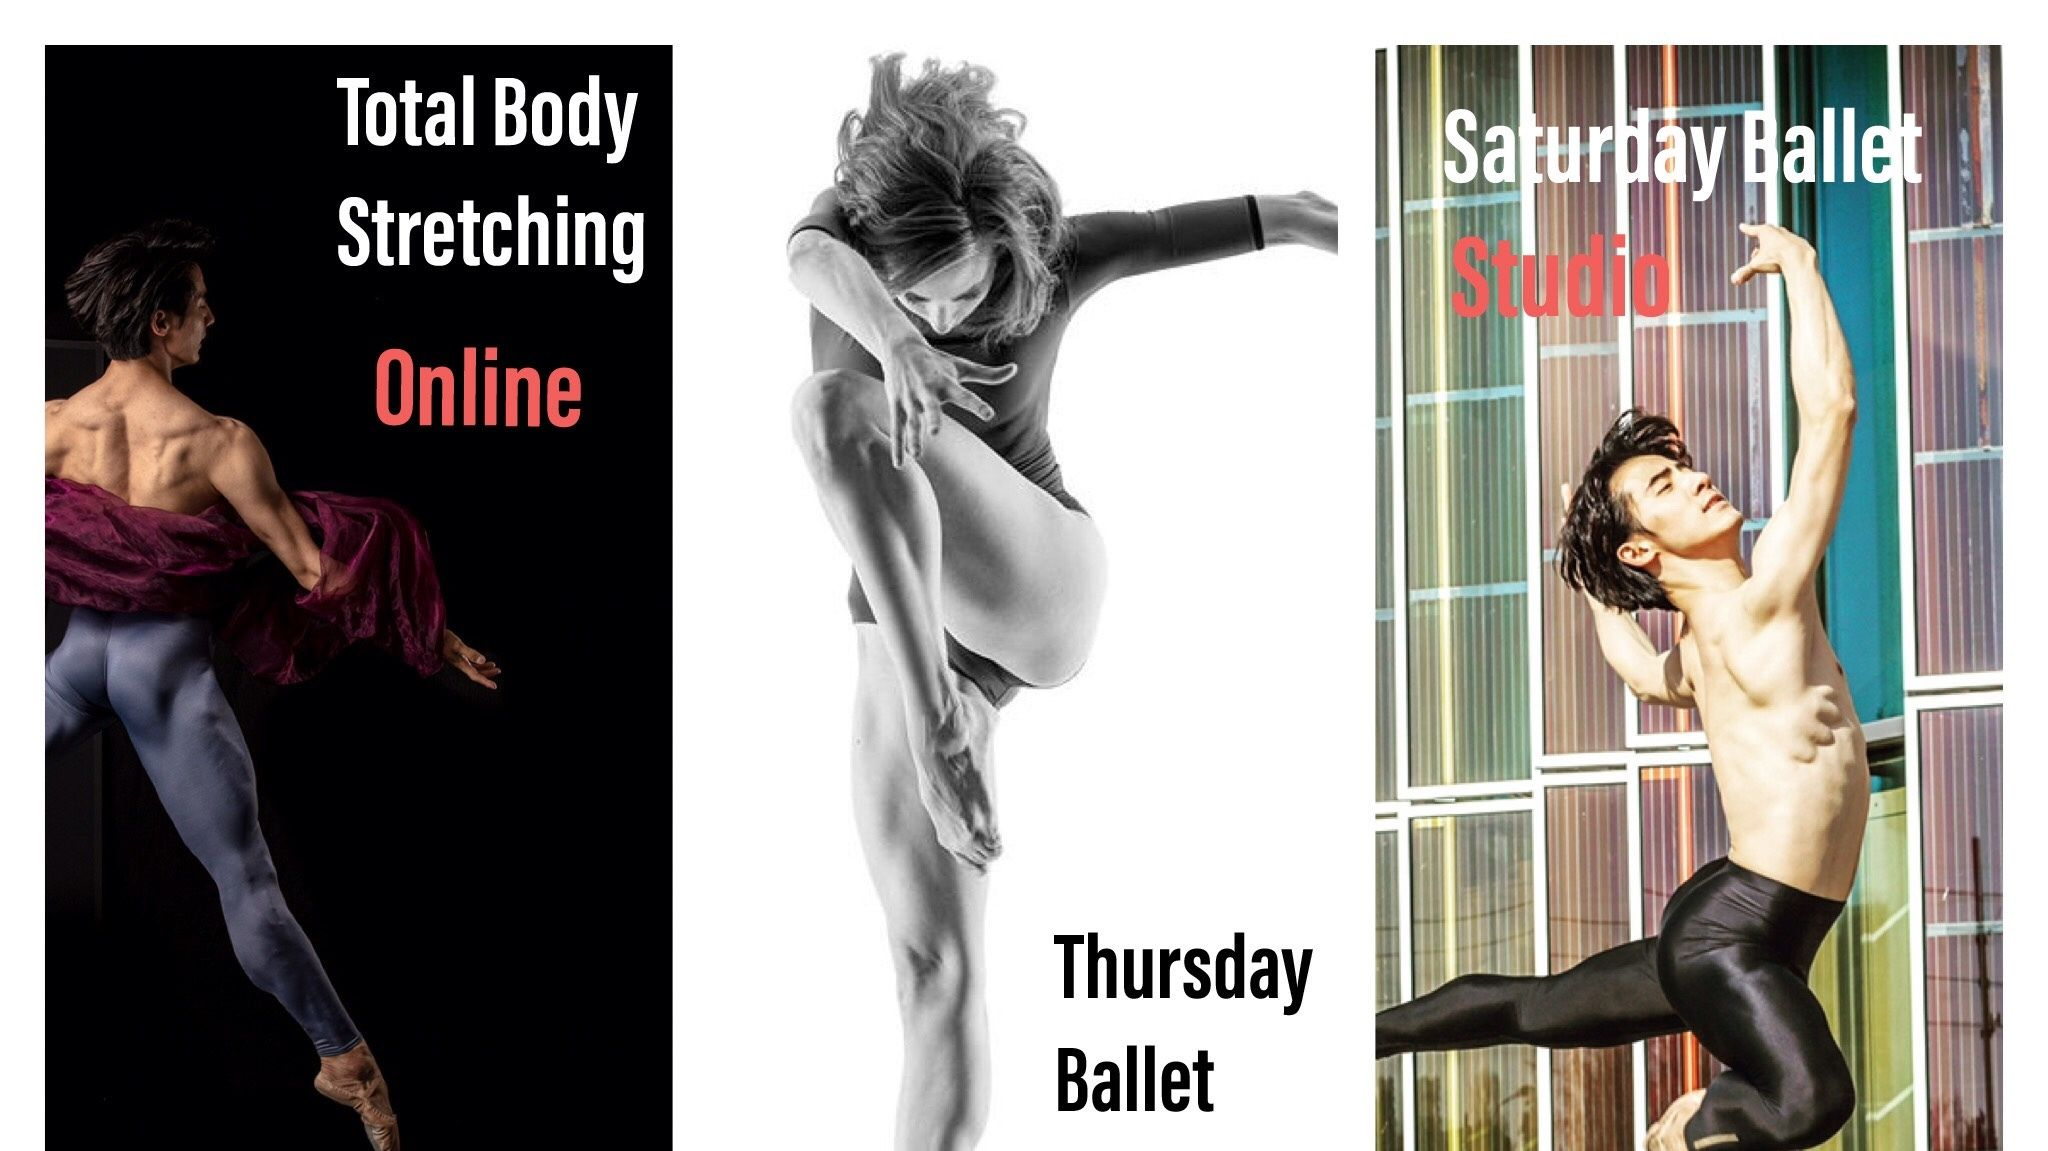 Total Body Stretching Tuesday